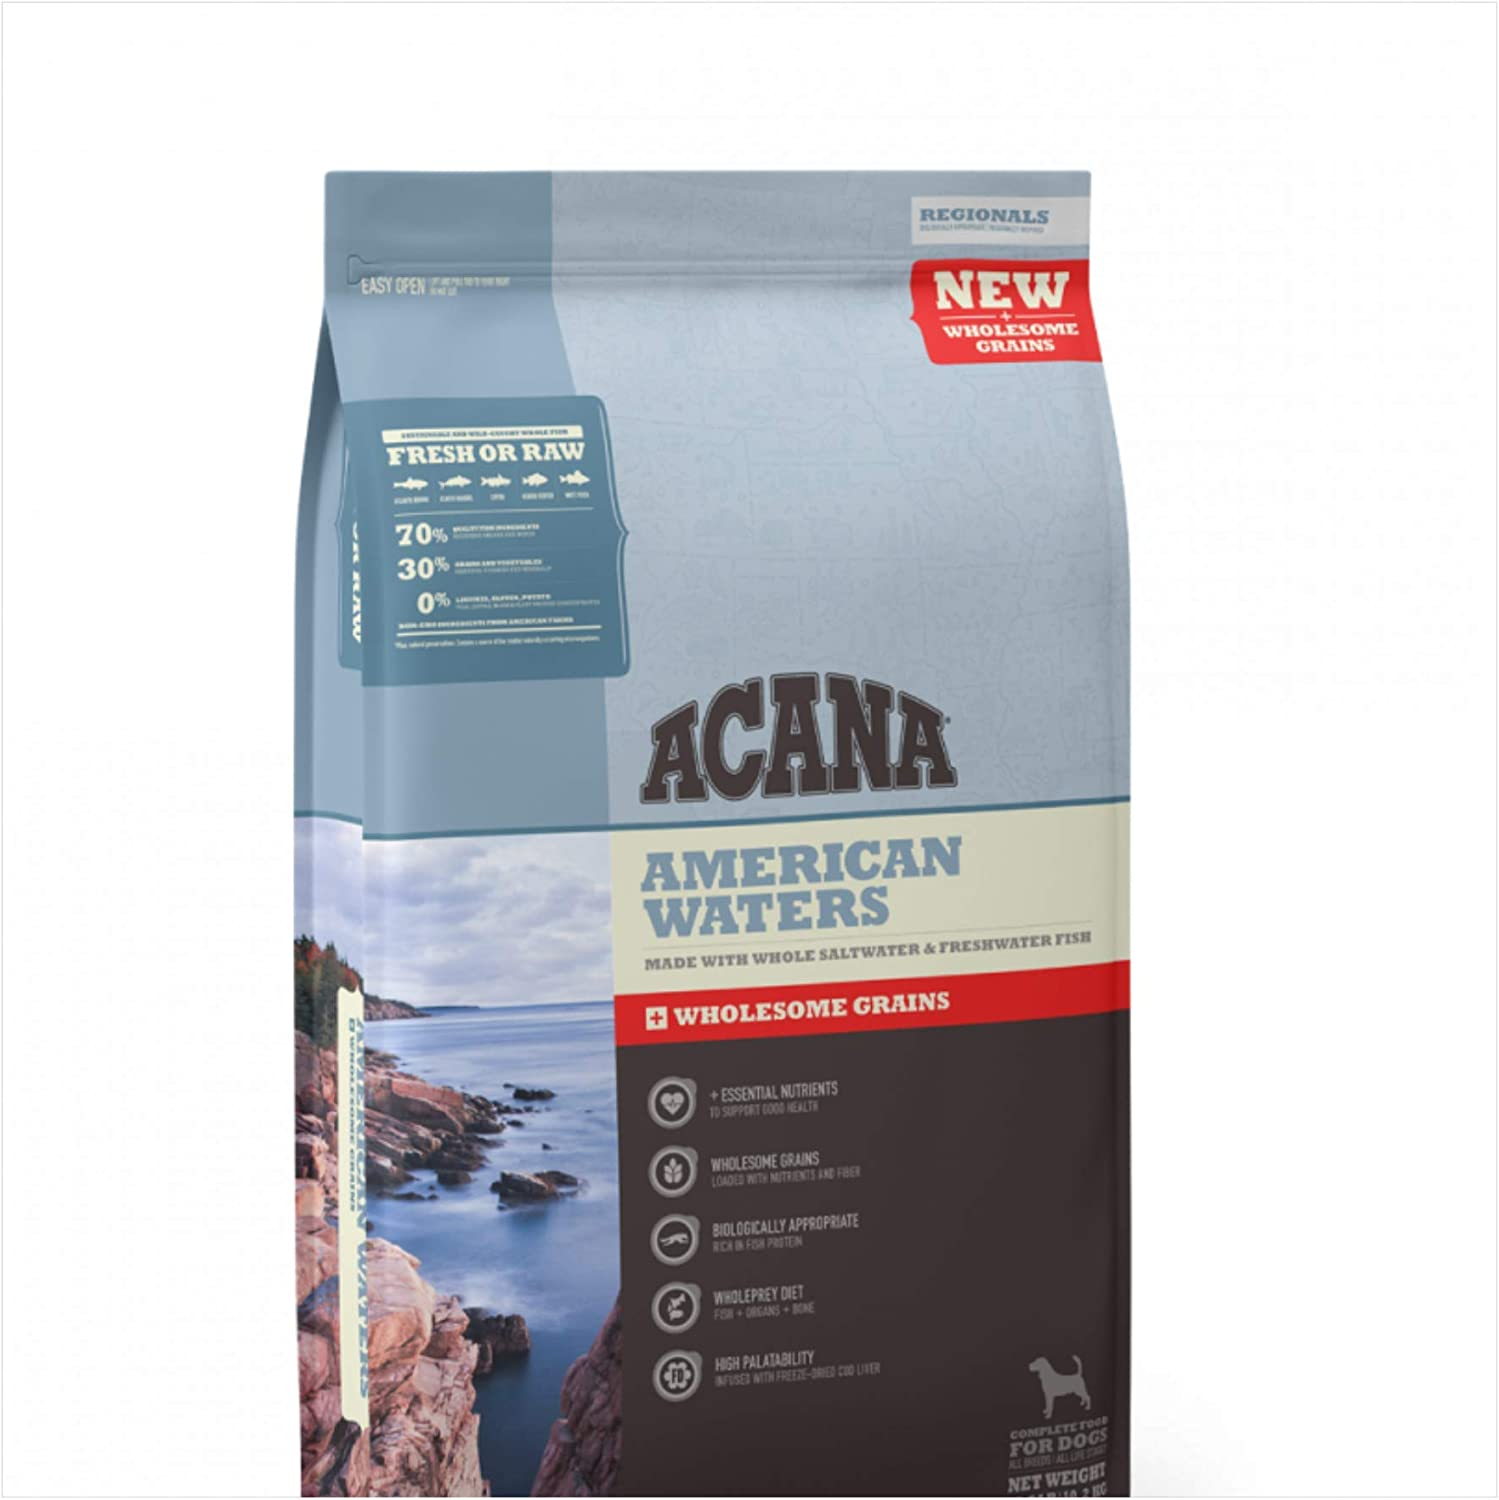 ACANA American Waters Wholesome Grains Dry Dog Food Formula, 11.5 Pound Bag (New)